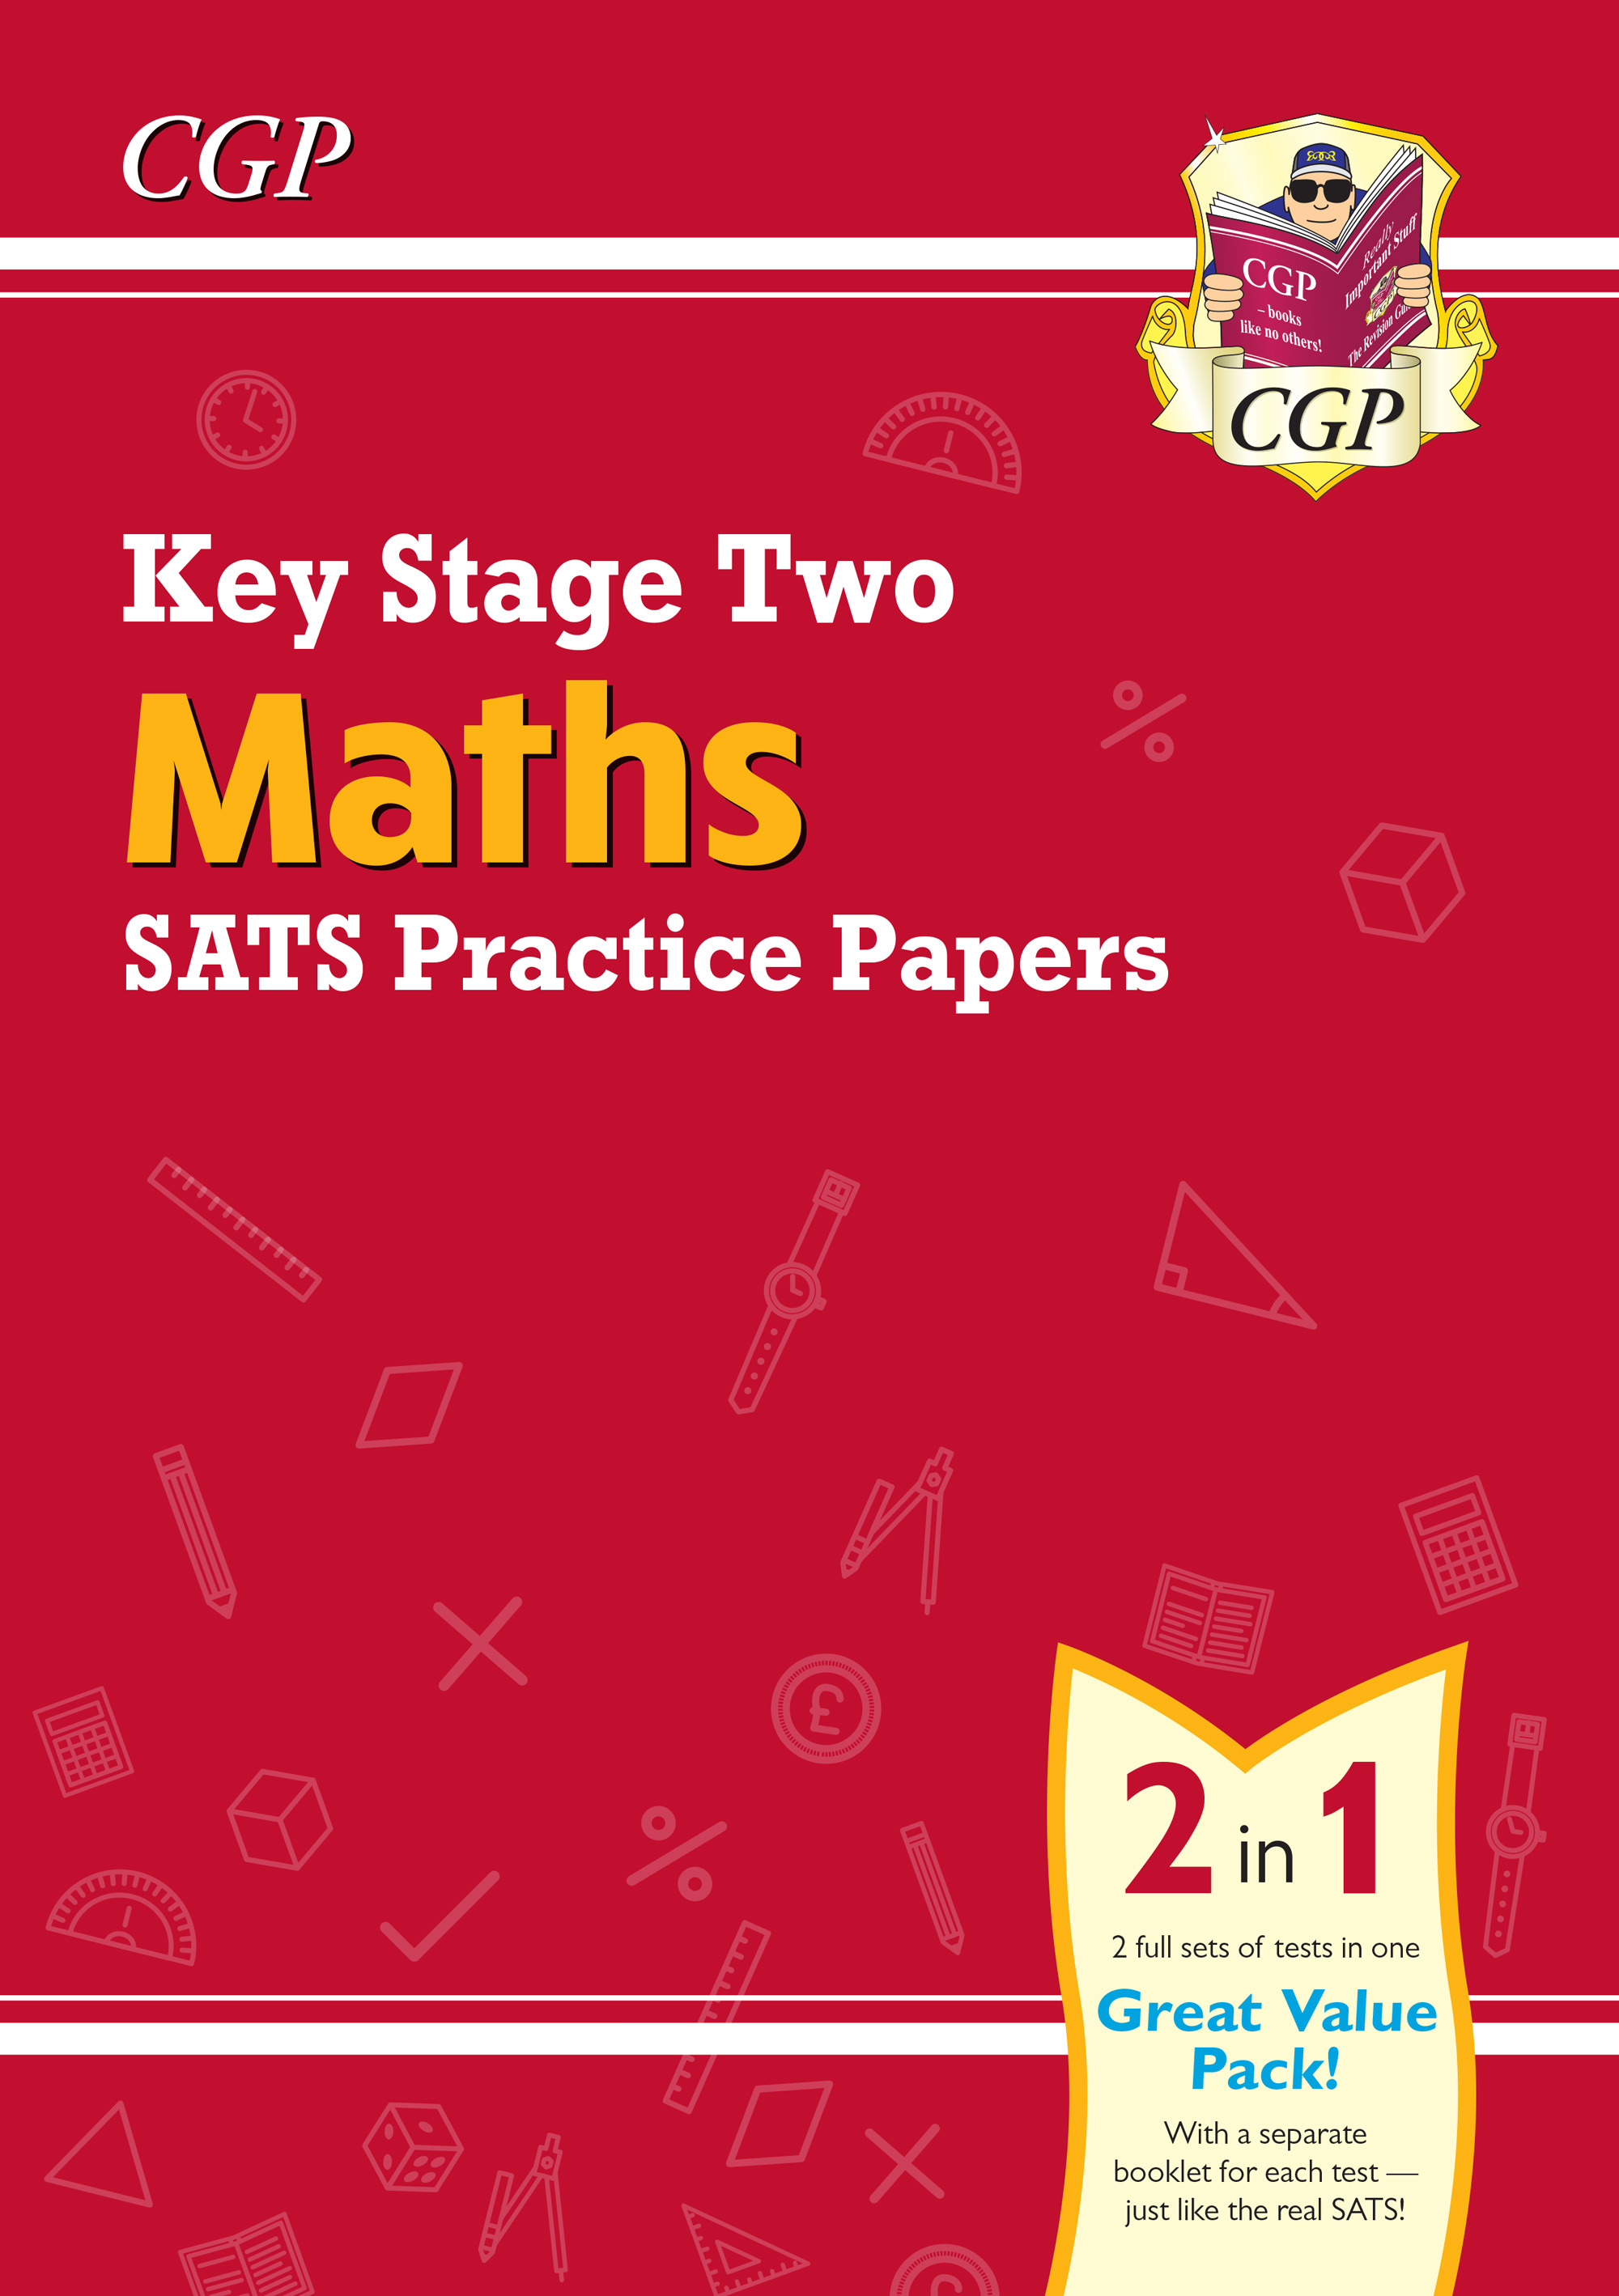 MHB27 - New KS2 Maths SATS Practice Papers (for the tests in 2020)